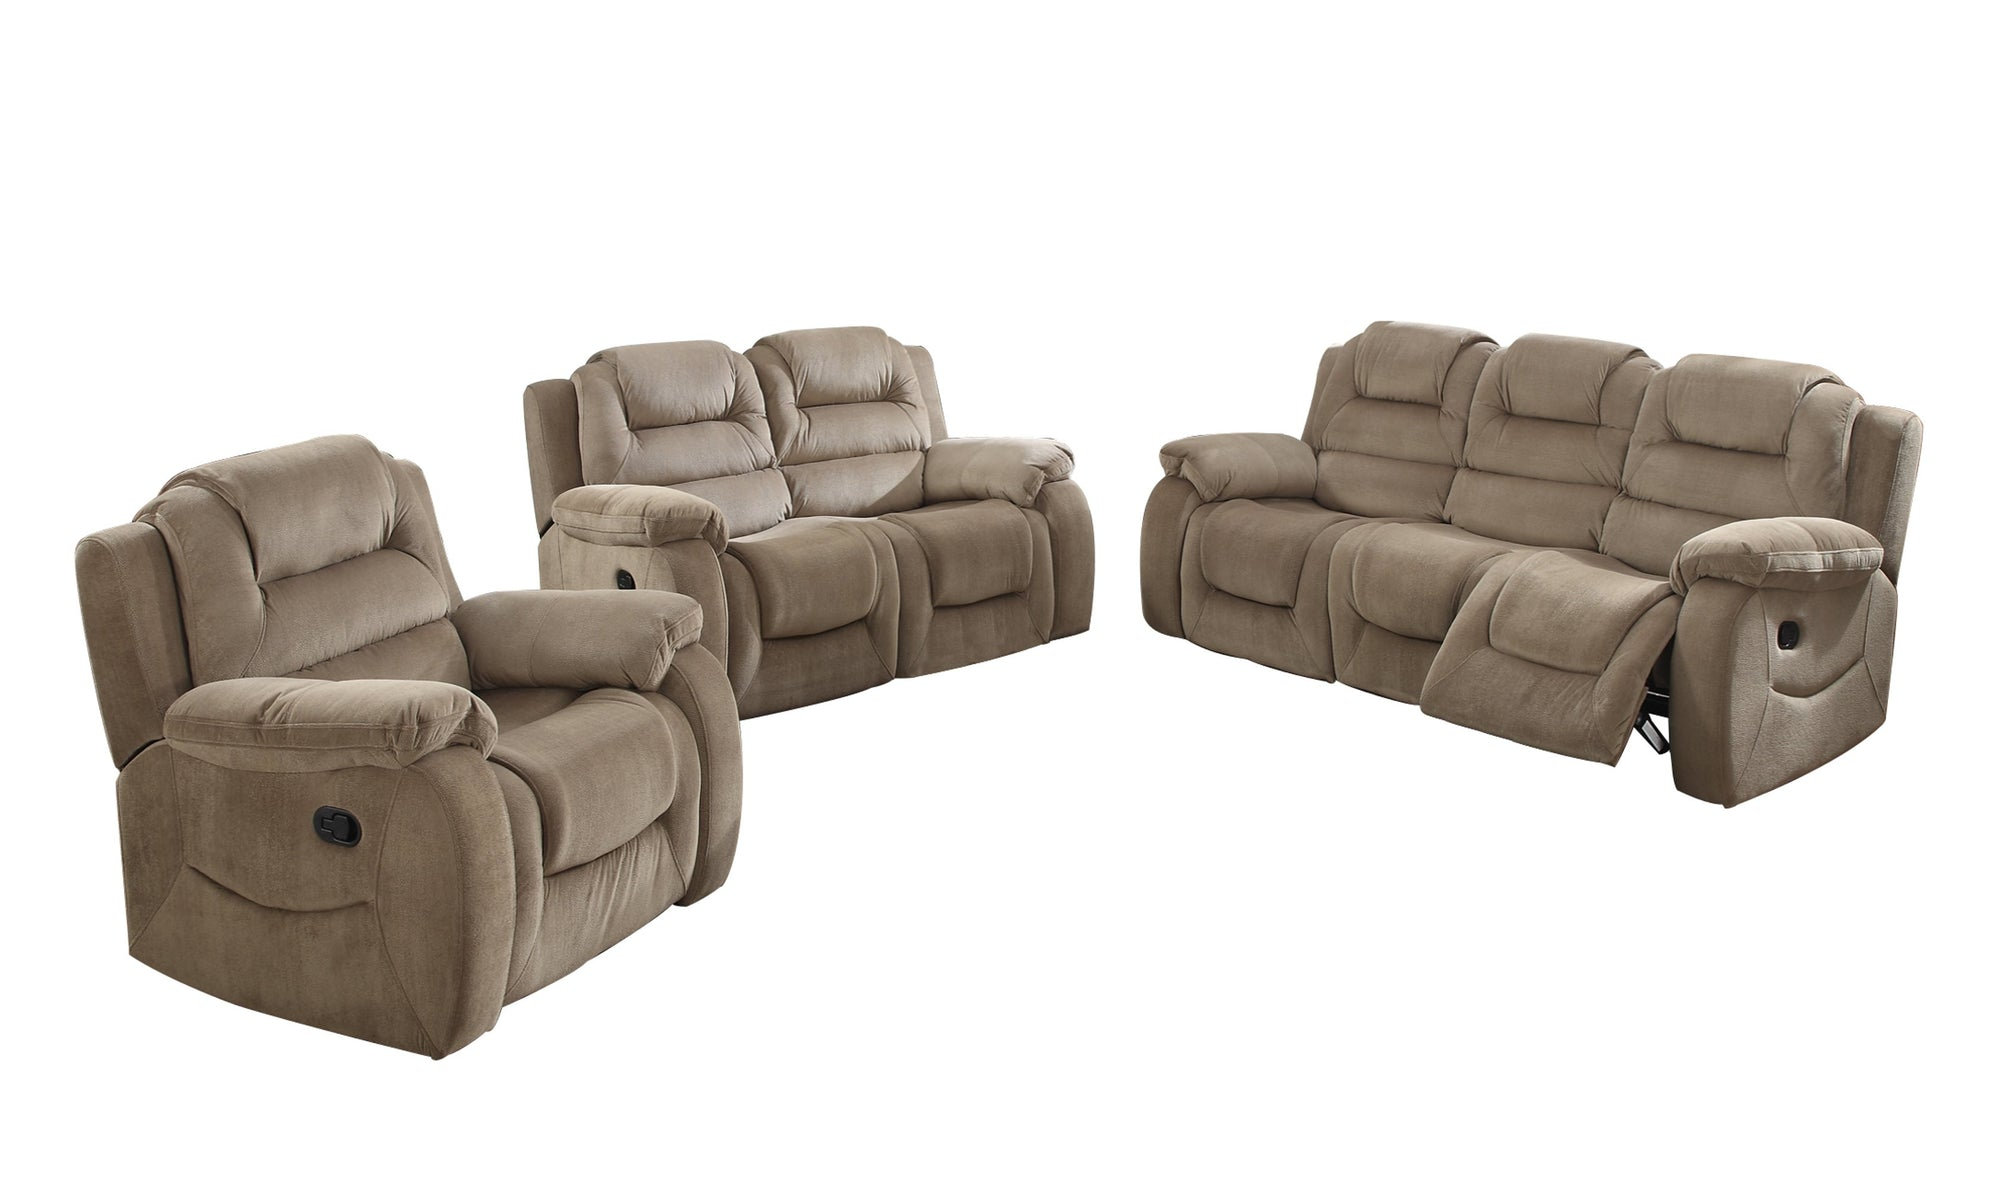 Sunset Trading Aspen 3 Piece Reclining Living Room Set by Sunset Trading - HomeKingz.com - Online furniture shop with the best prices & premium customer support!